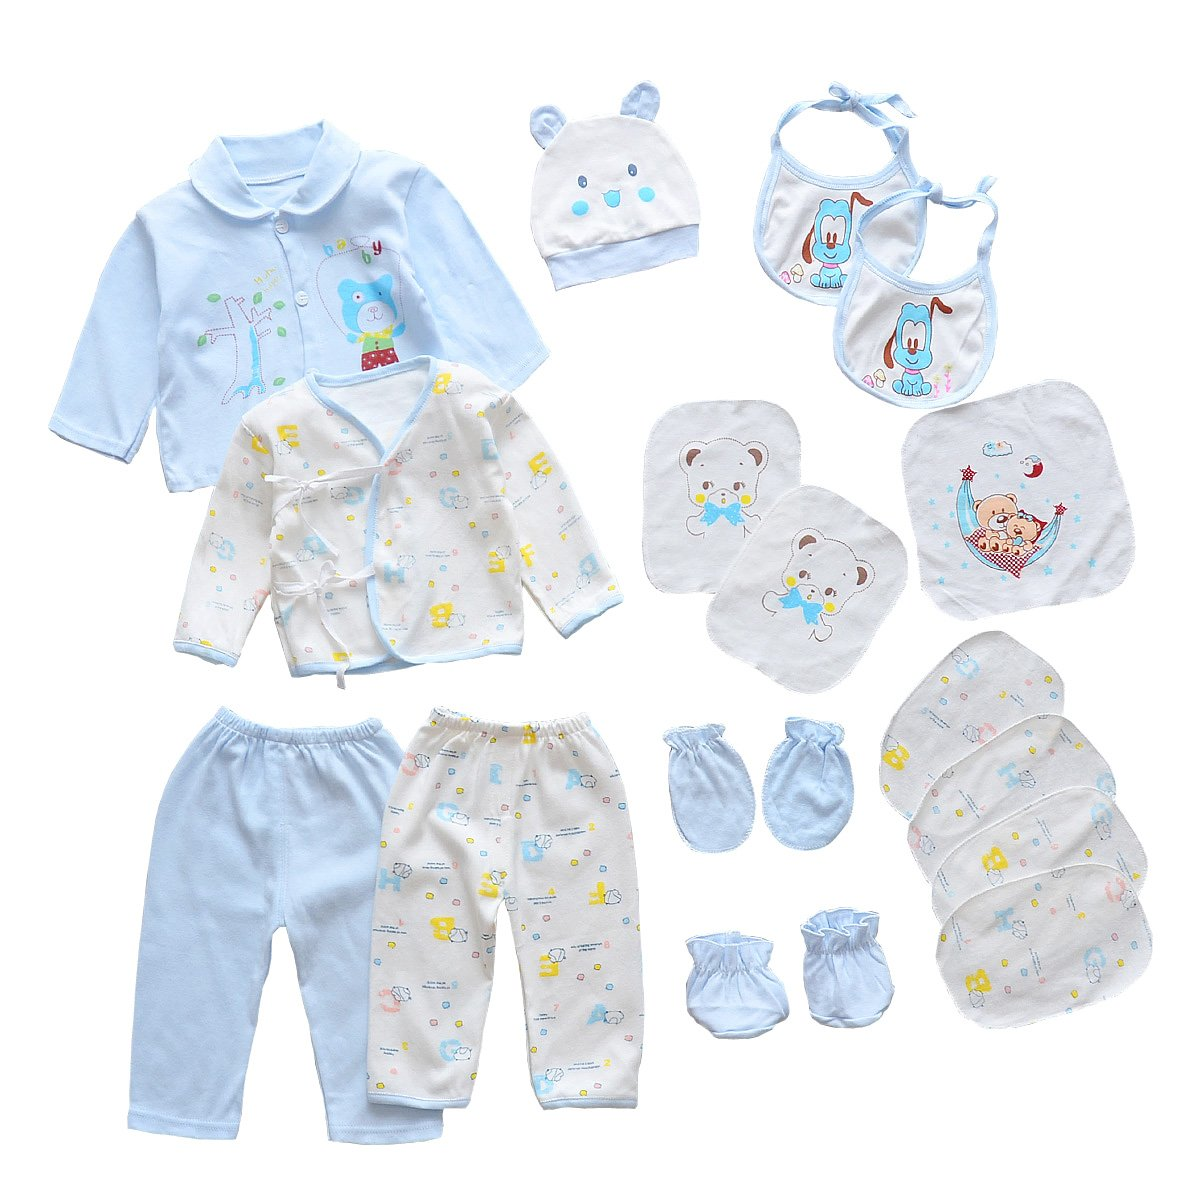 8359635a16df Amazon.com: 18pcs Unisex Newborn Baby Boy Girl Clothes Sets, 0-6 Months  Infant Outfits, Essentials Accessories (Blue): Clothing